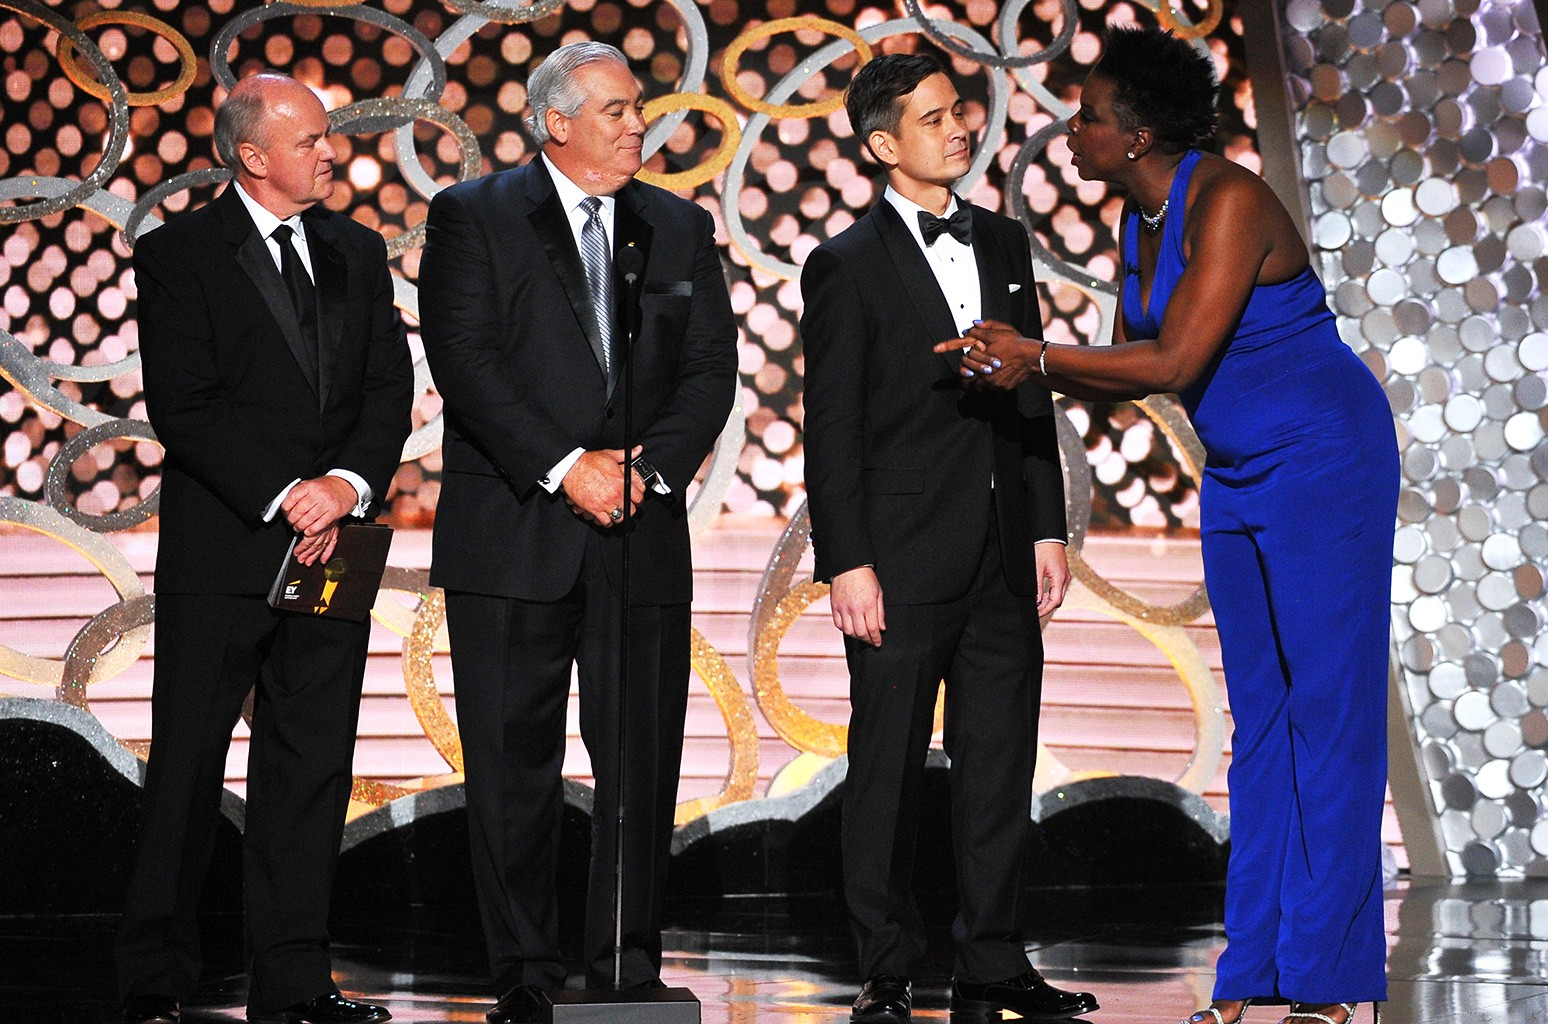 Leslie Jones and accountants from Ernst & Young appear on stage at the 68th Primetime Emmy Awards on Sept. 18, 2016 at the Microsoft Theater in Los Angeles.